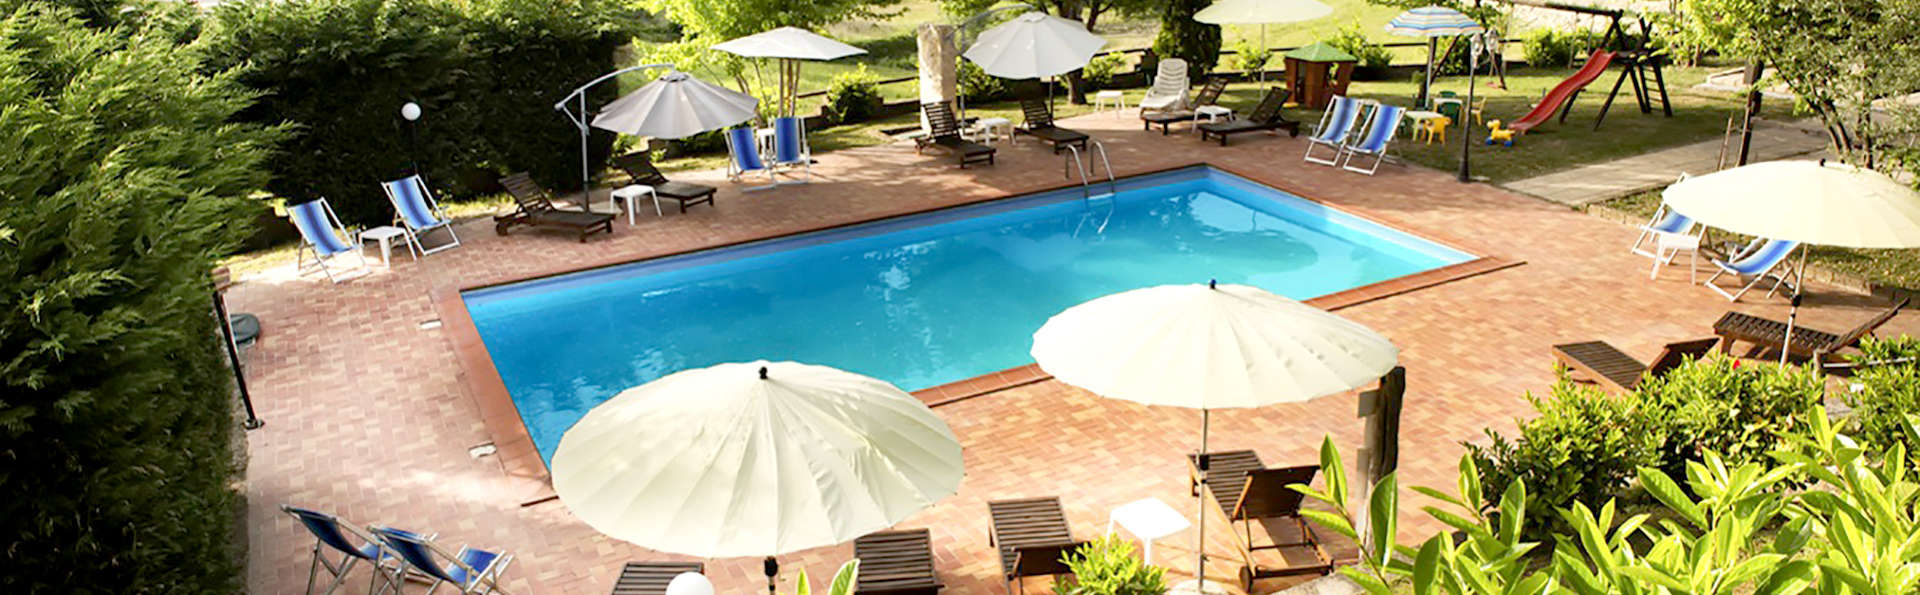 Umbria Resort & SPA - Edit_Pool2.jpg